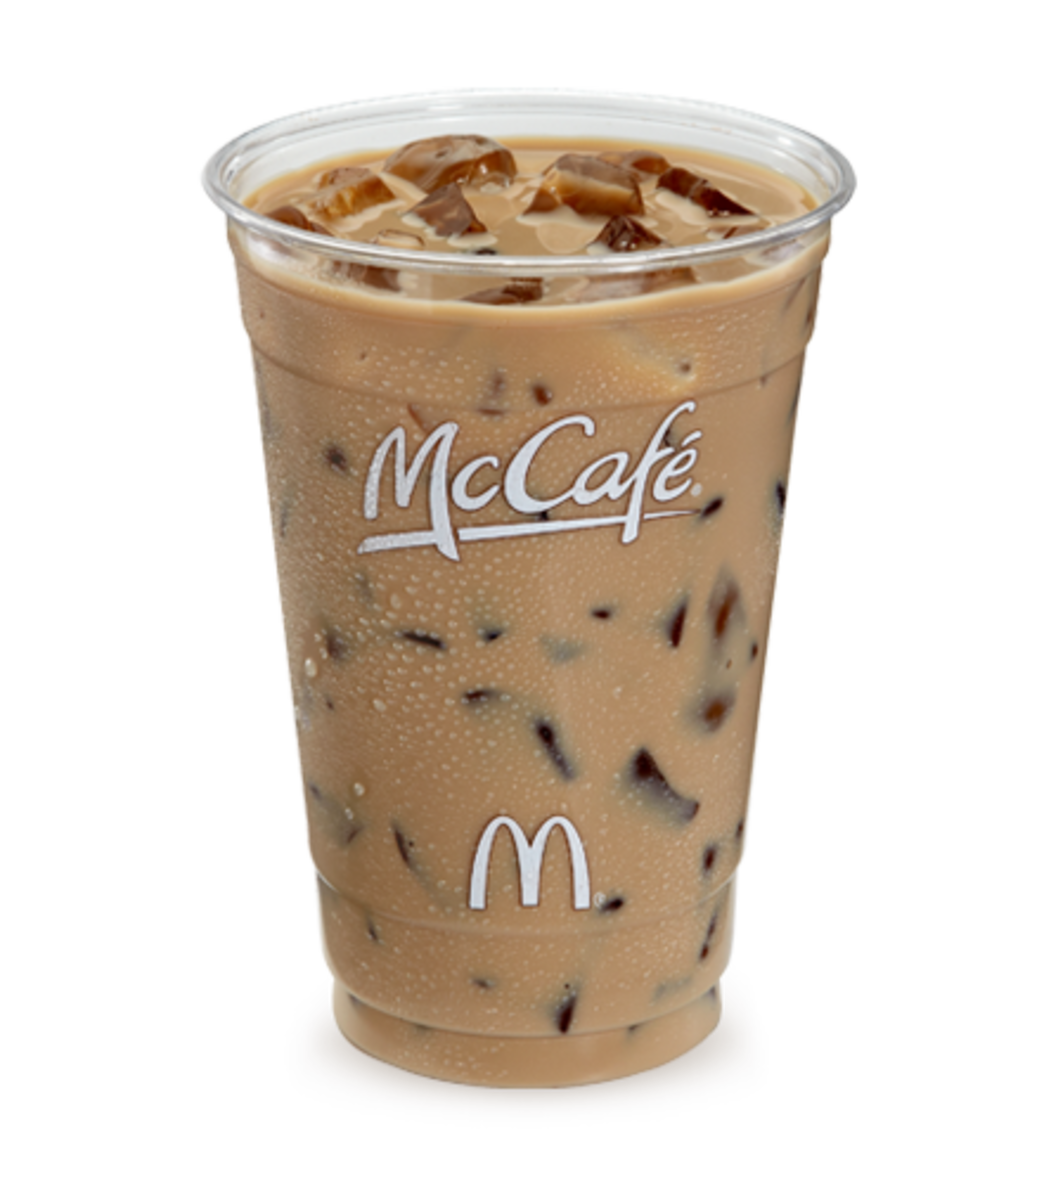 The large iced coffee now